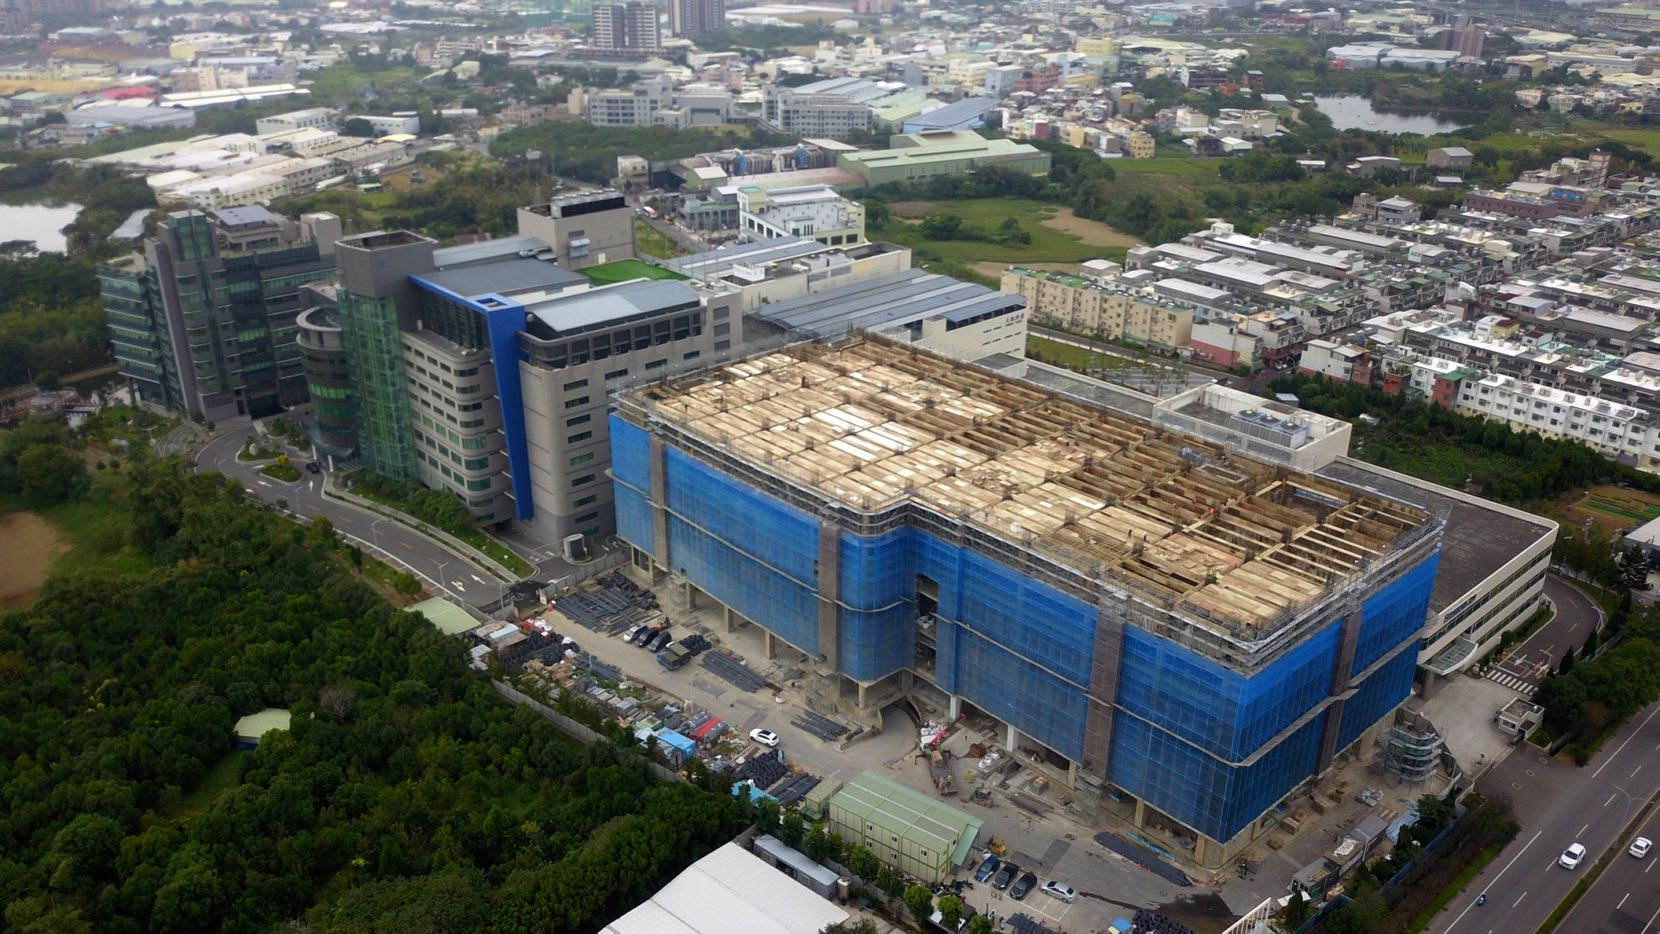 Super Micro Computer Inc., which makes customized servers for large data center clients, is completing its Taiwan campus that will allow it to produce high volumes of cloud servers at lower costs.